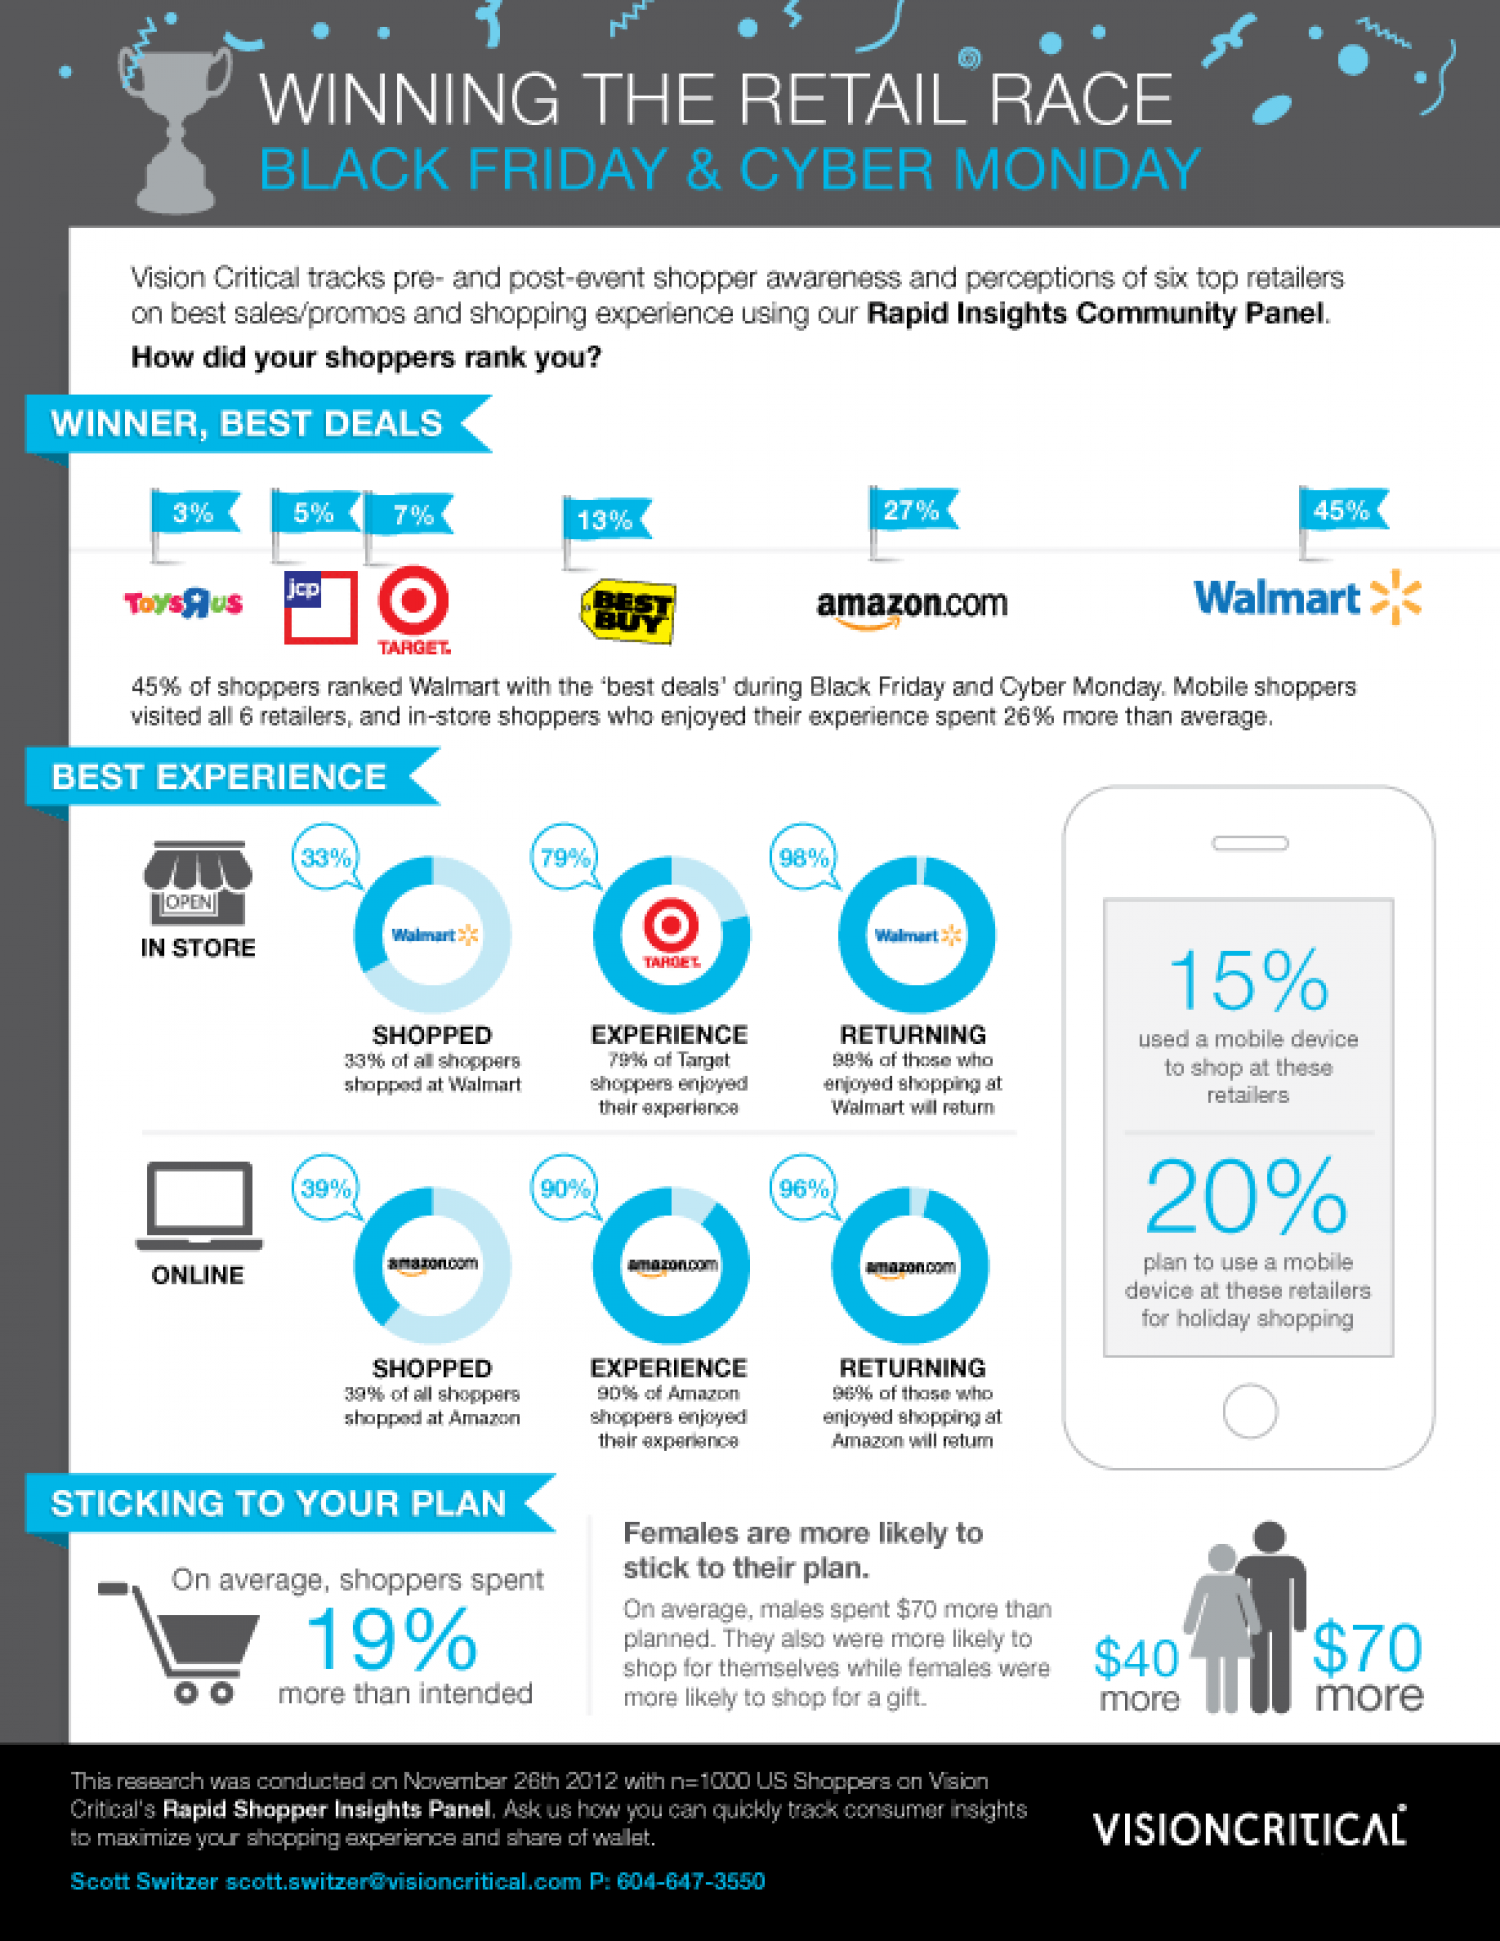 Winning the Retail Race Infographic